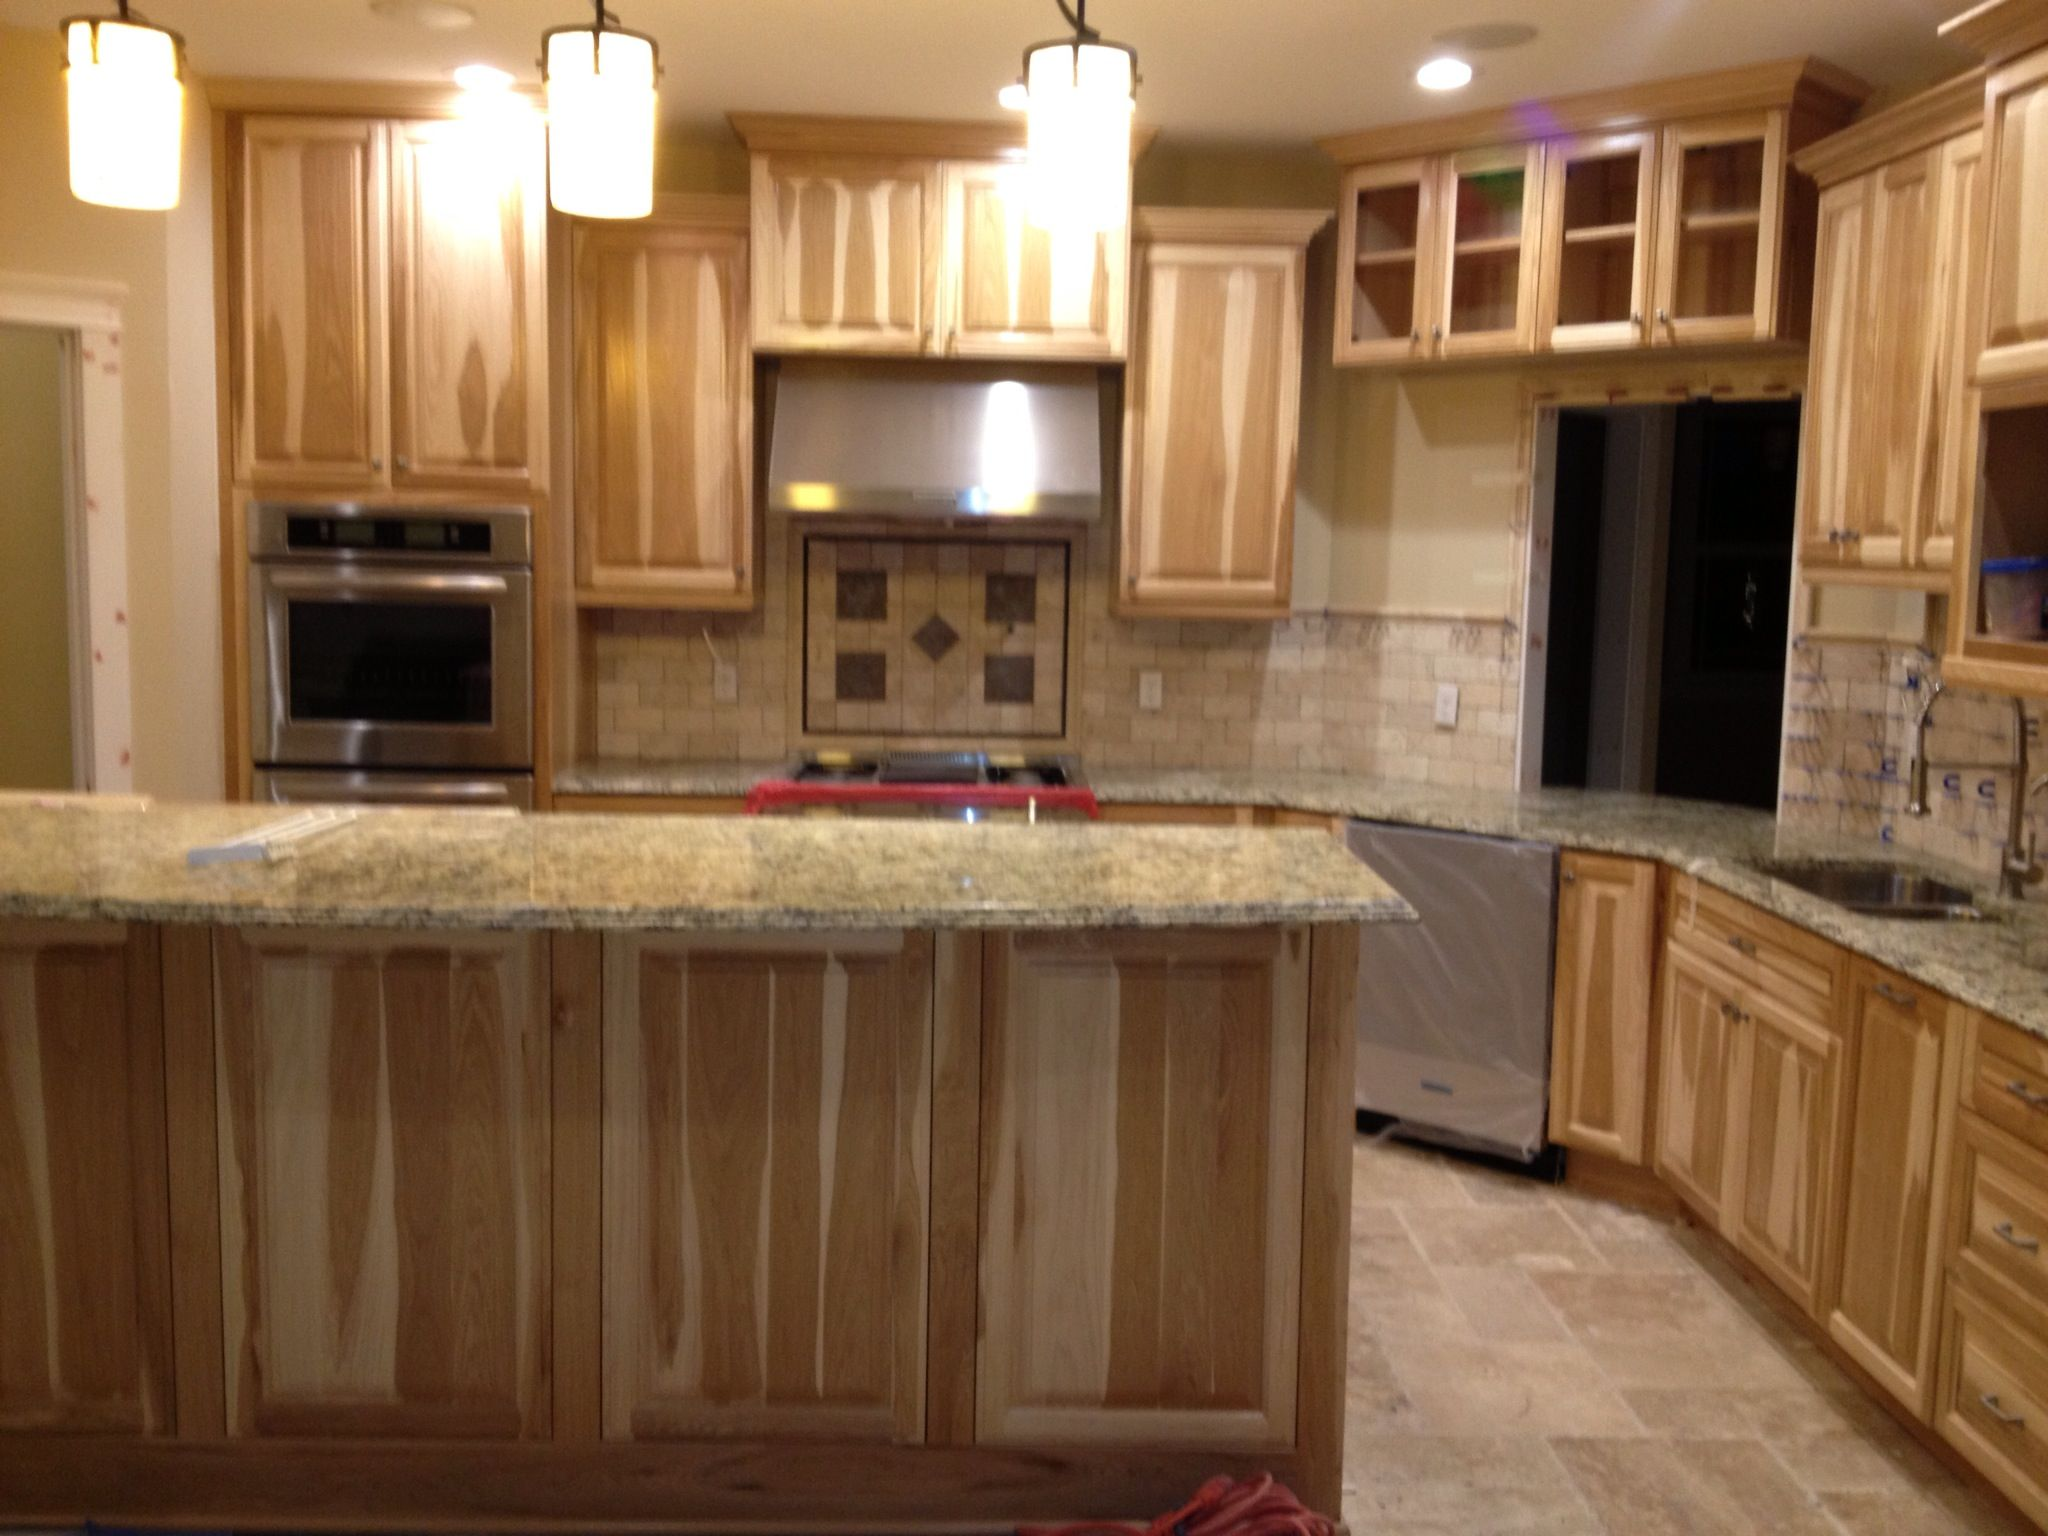 kitchen with hickory cabinets and travertine backsplash. with